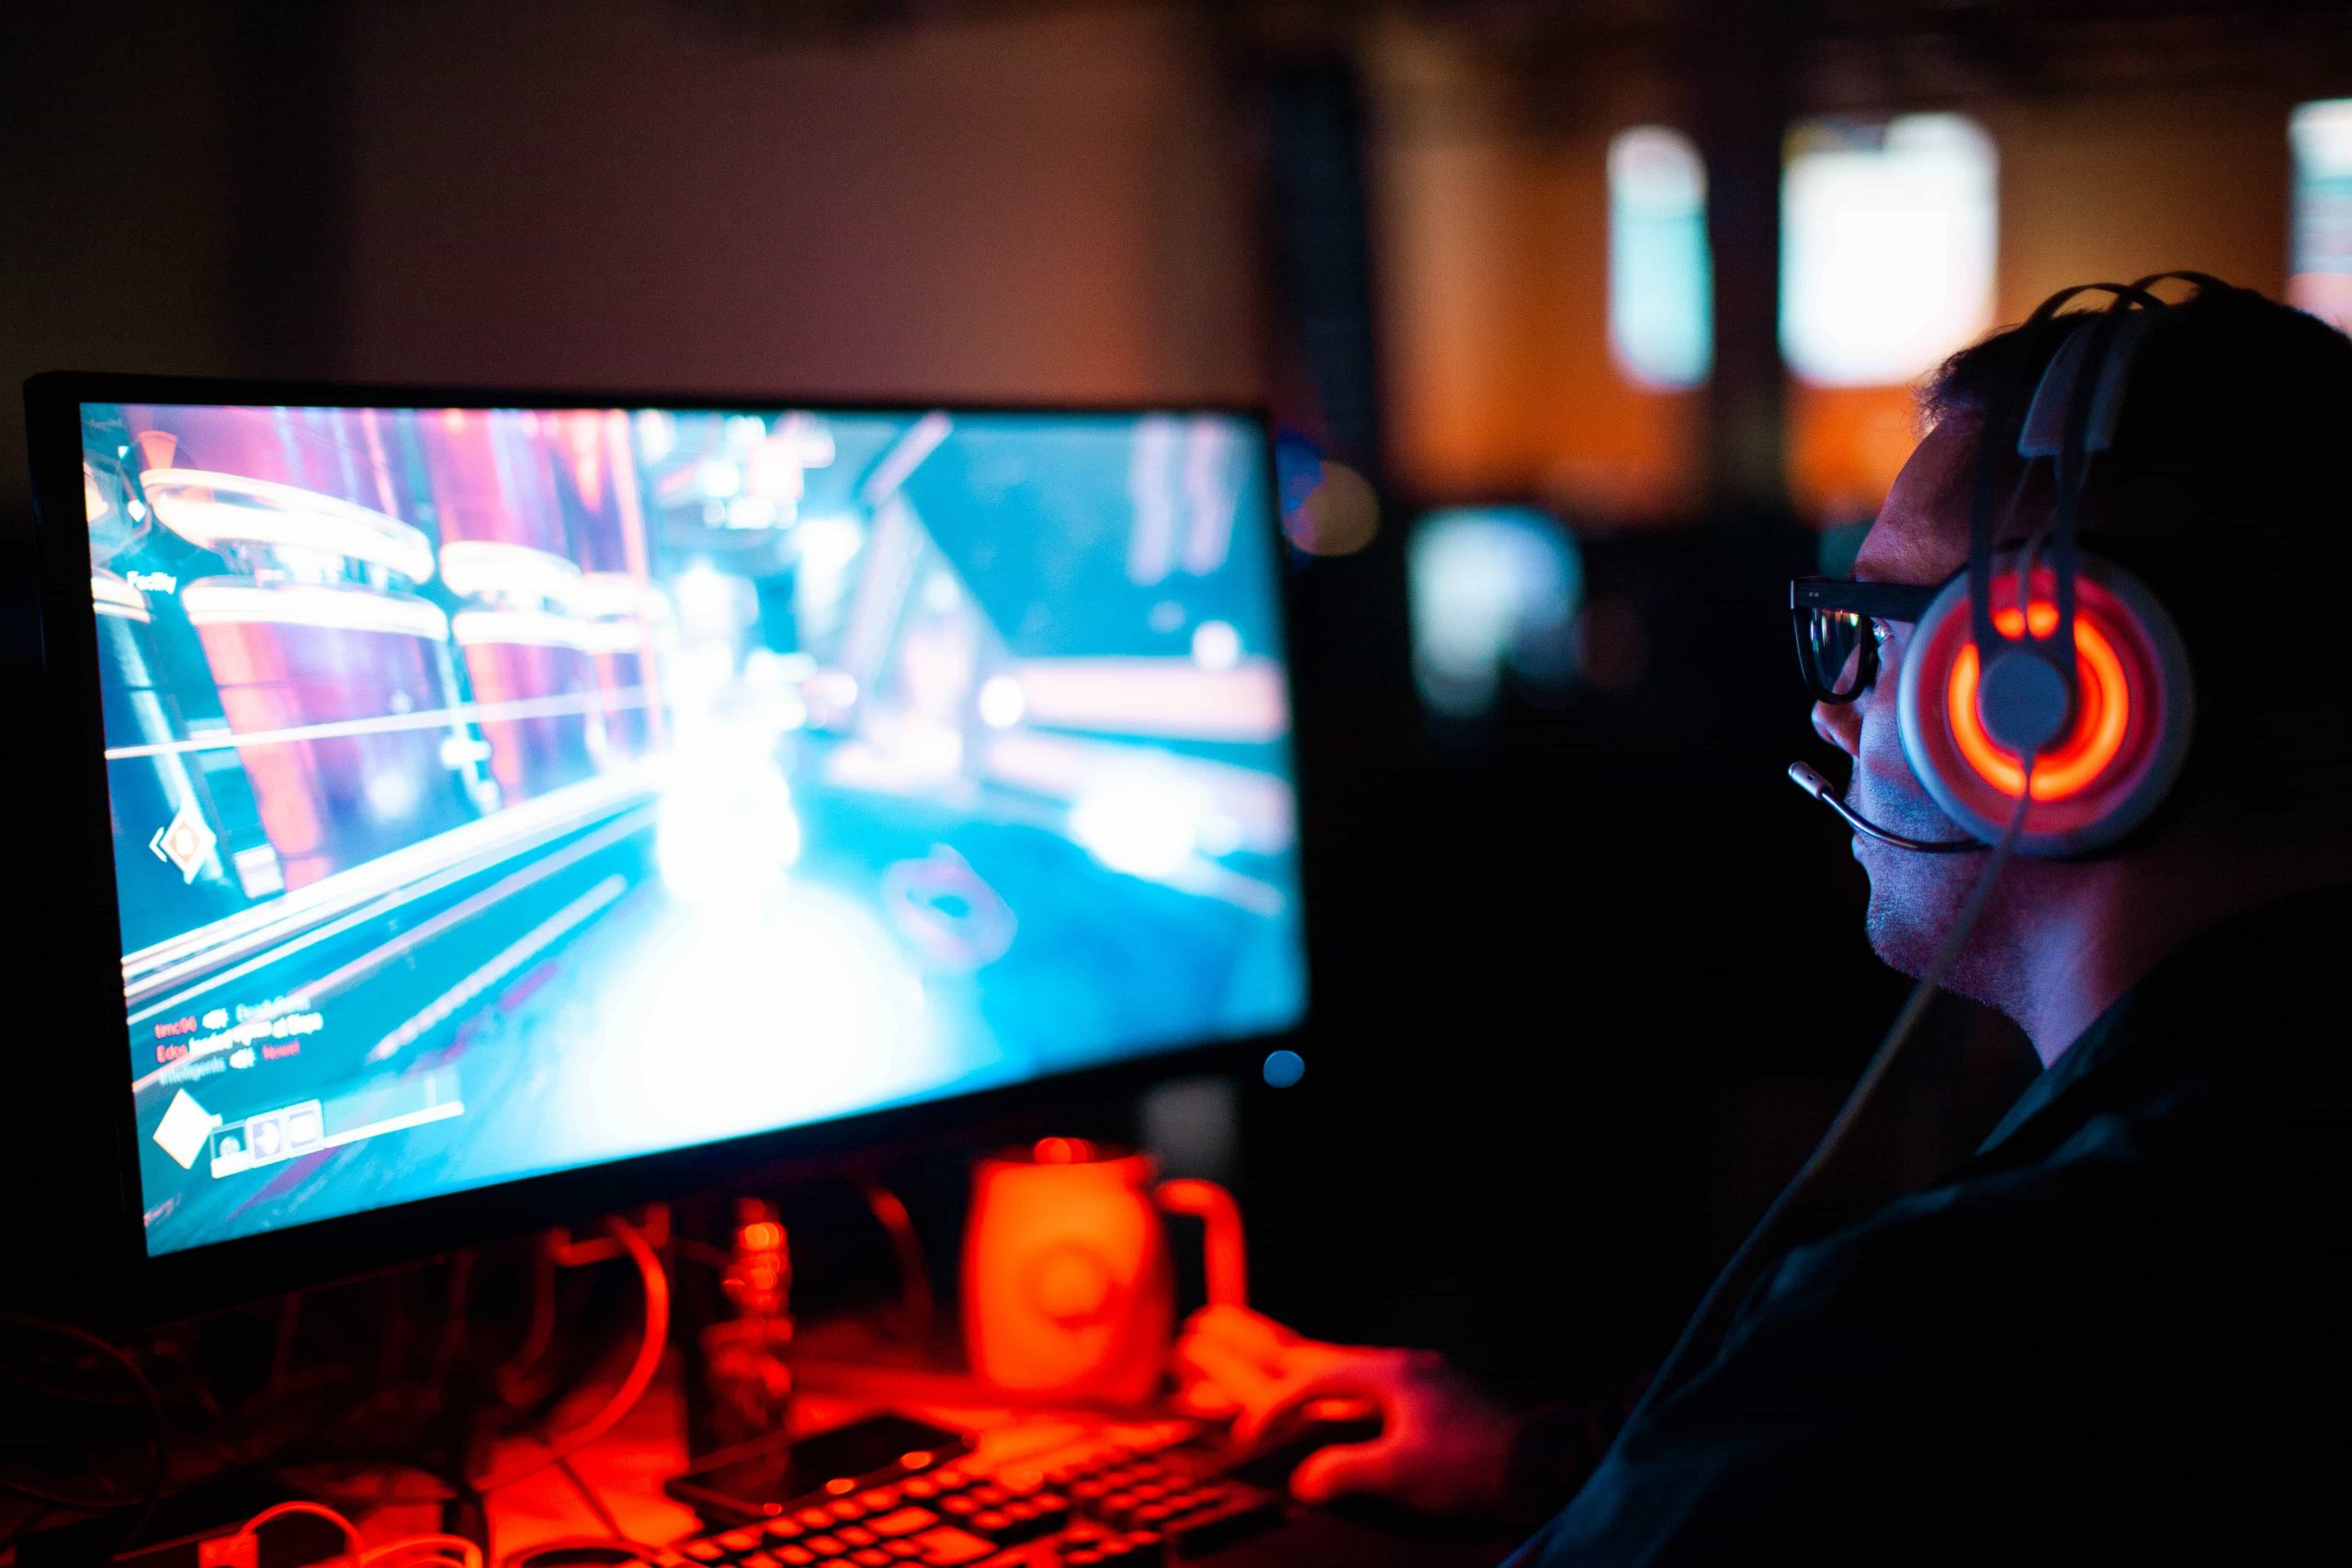 Image shows a player in front of a PC monitor using a white gamer headset with orange lighting.